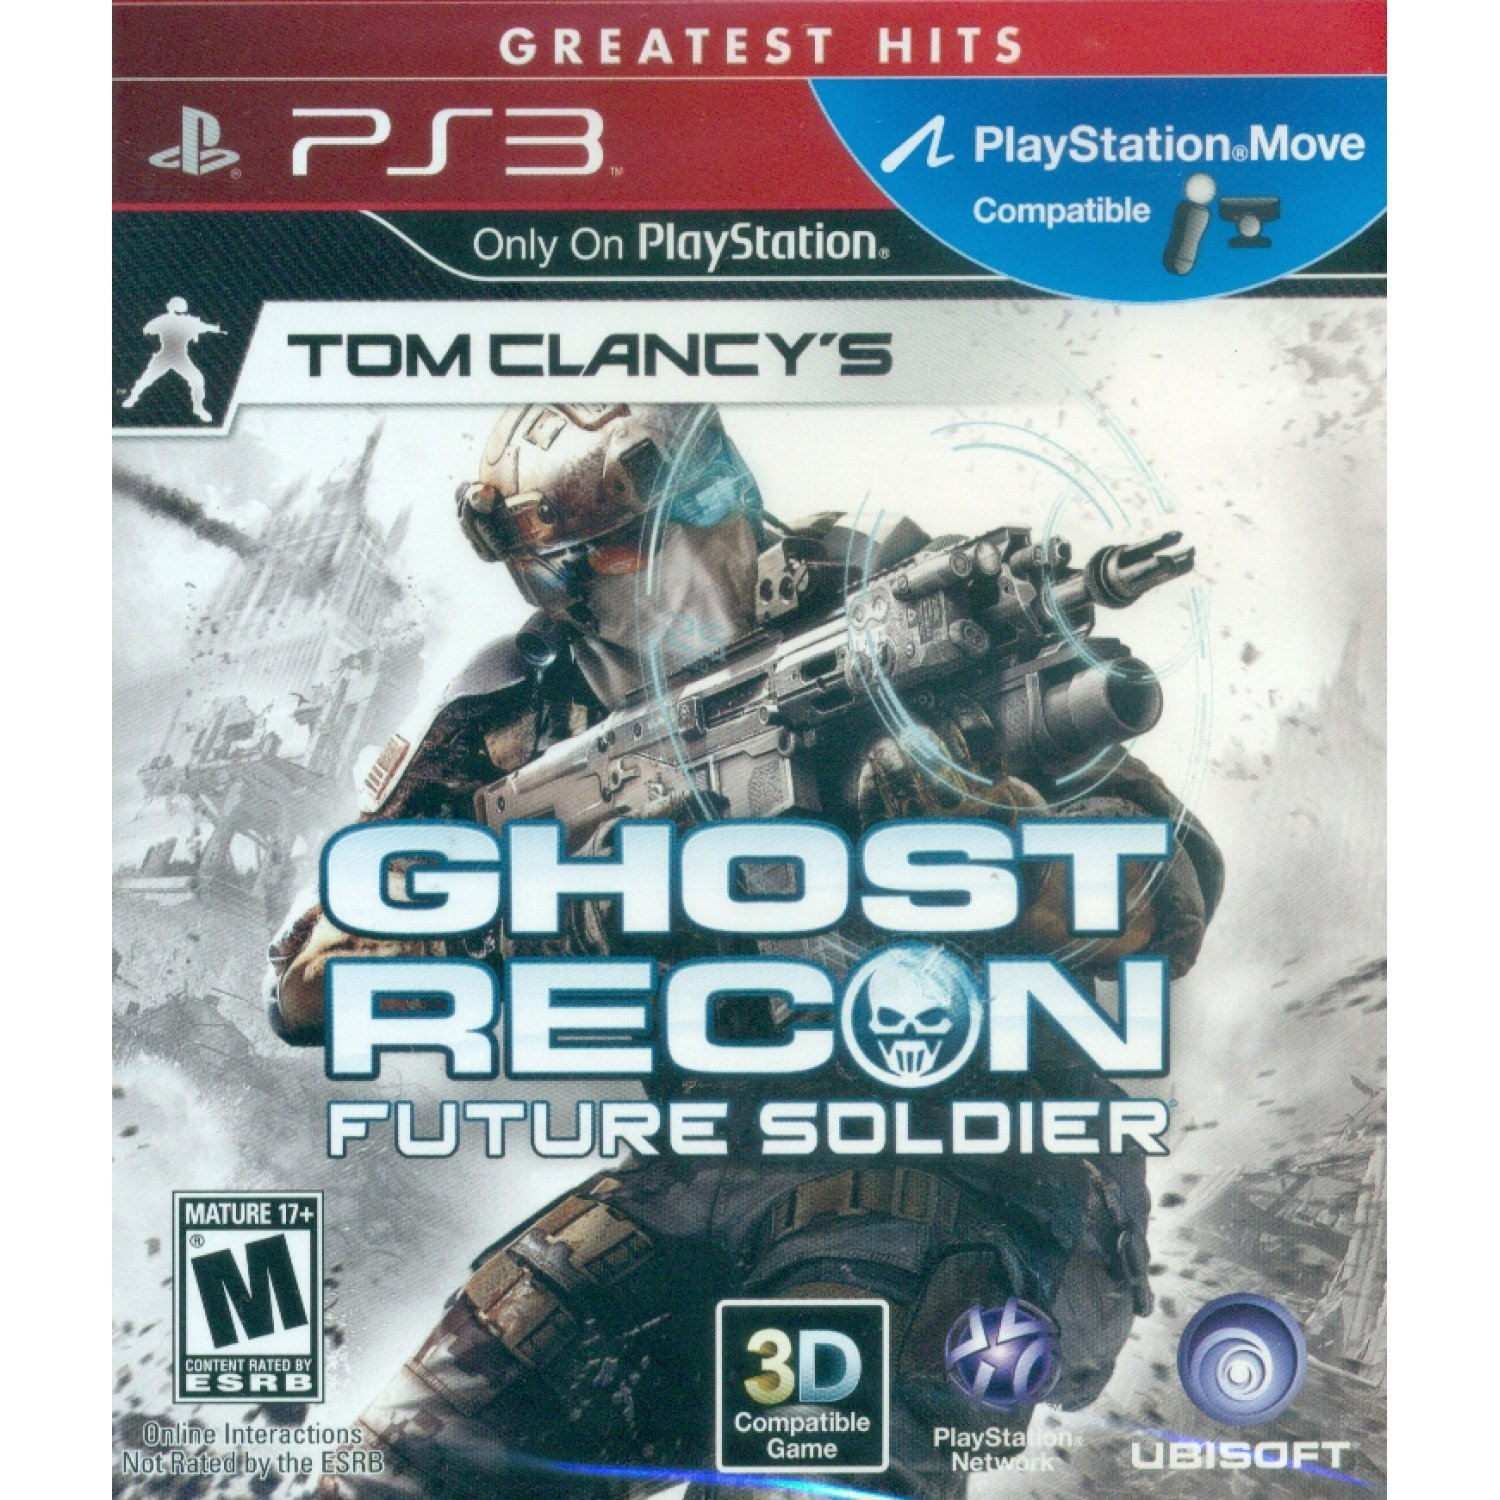 tom clancy's ghost recon: future soldier (greatest hits)